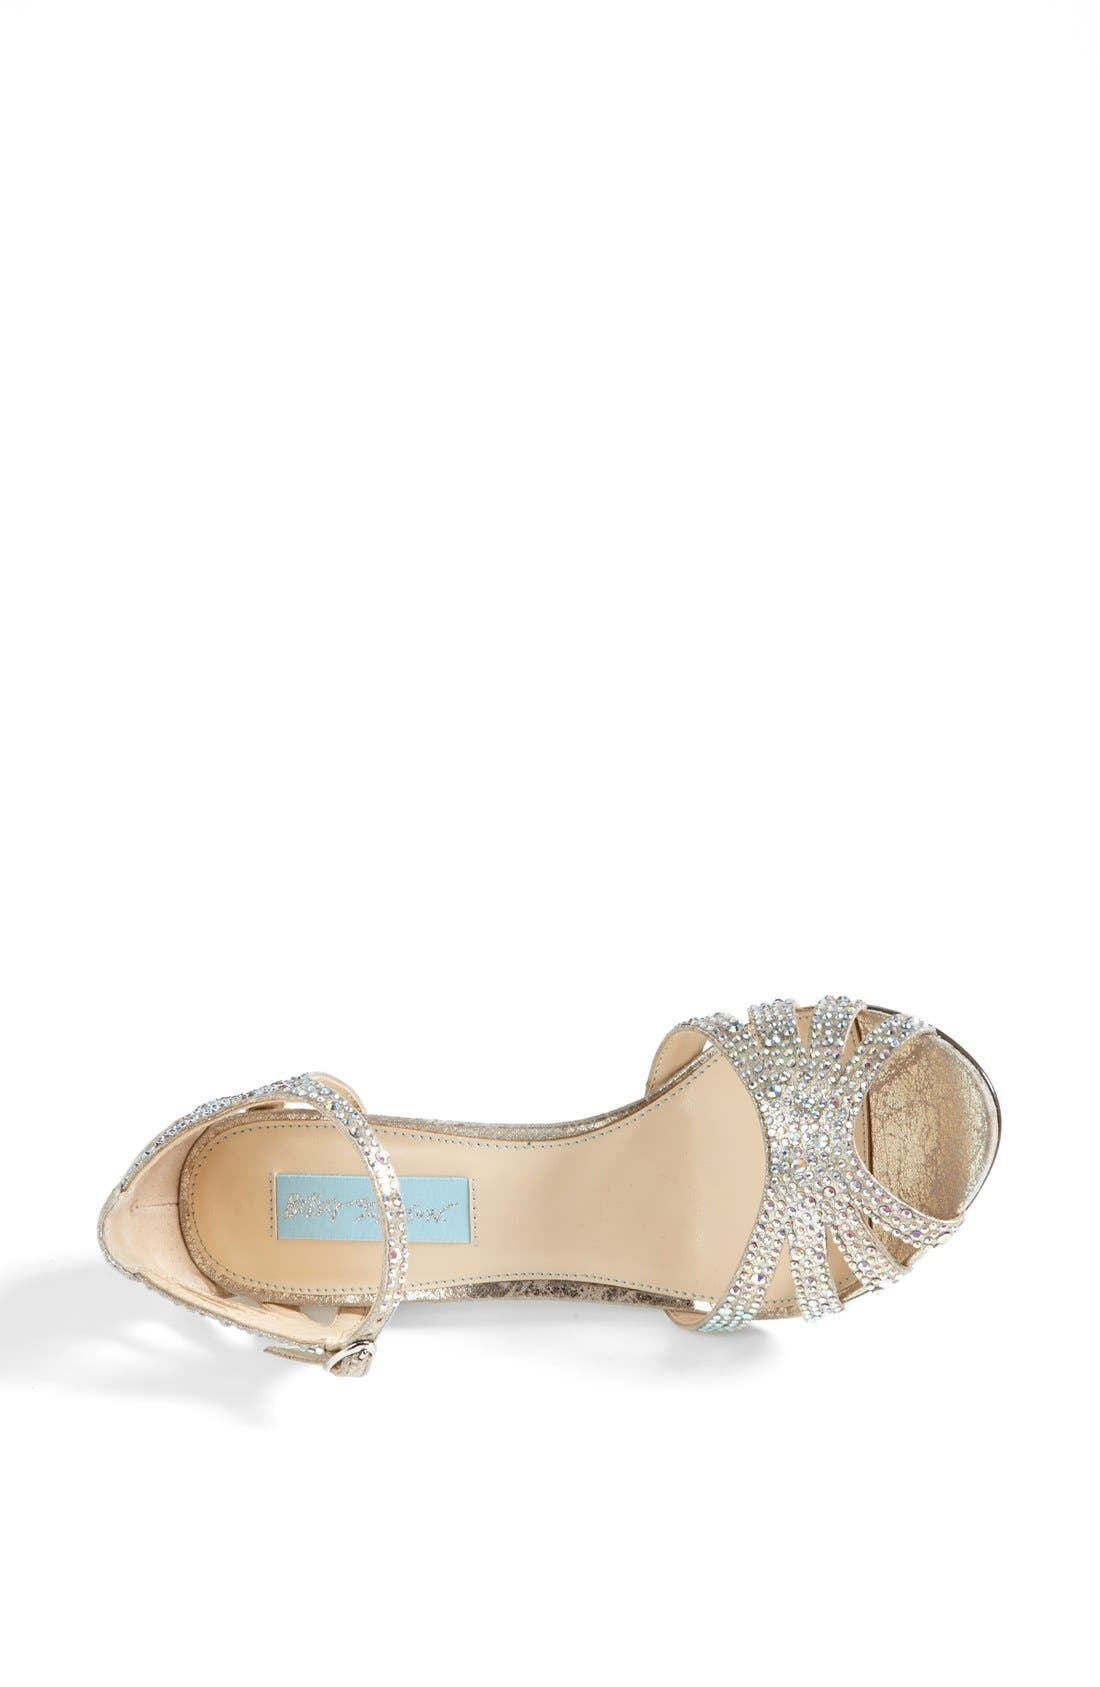 Alternate Image 3  - Betsey Johnson 'Sweet' Sandal